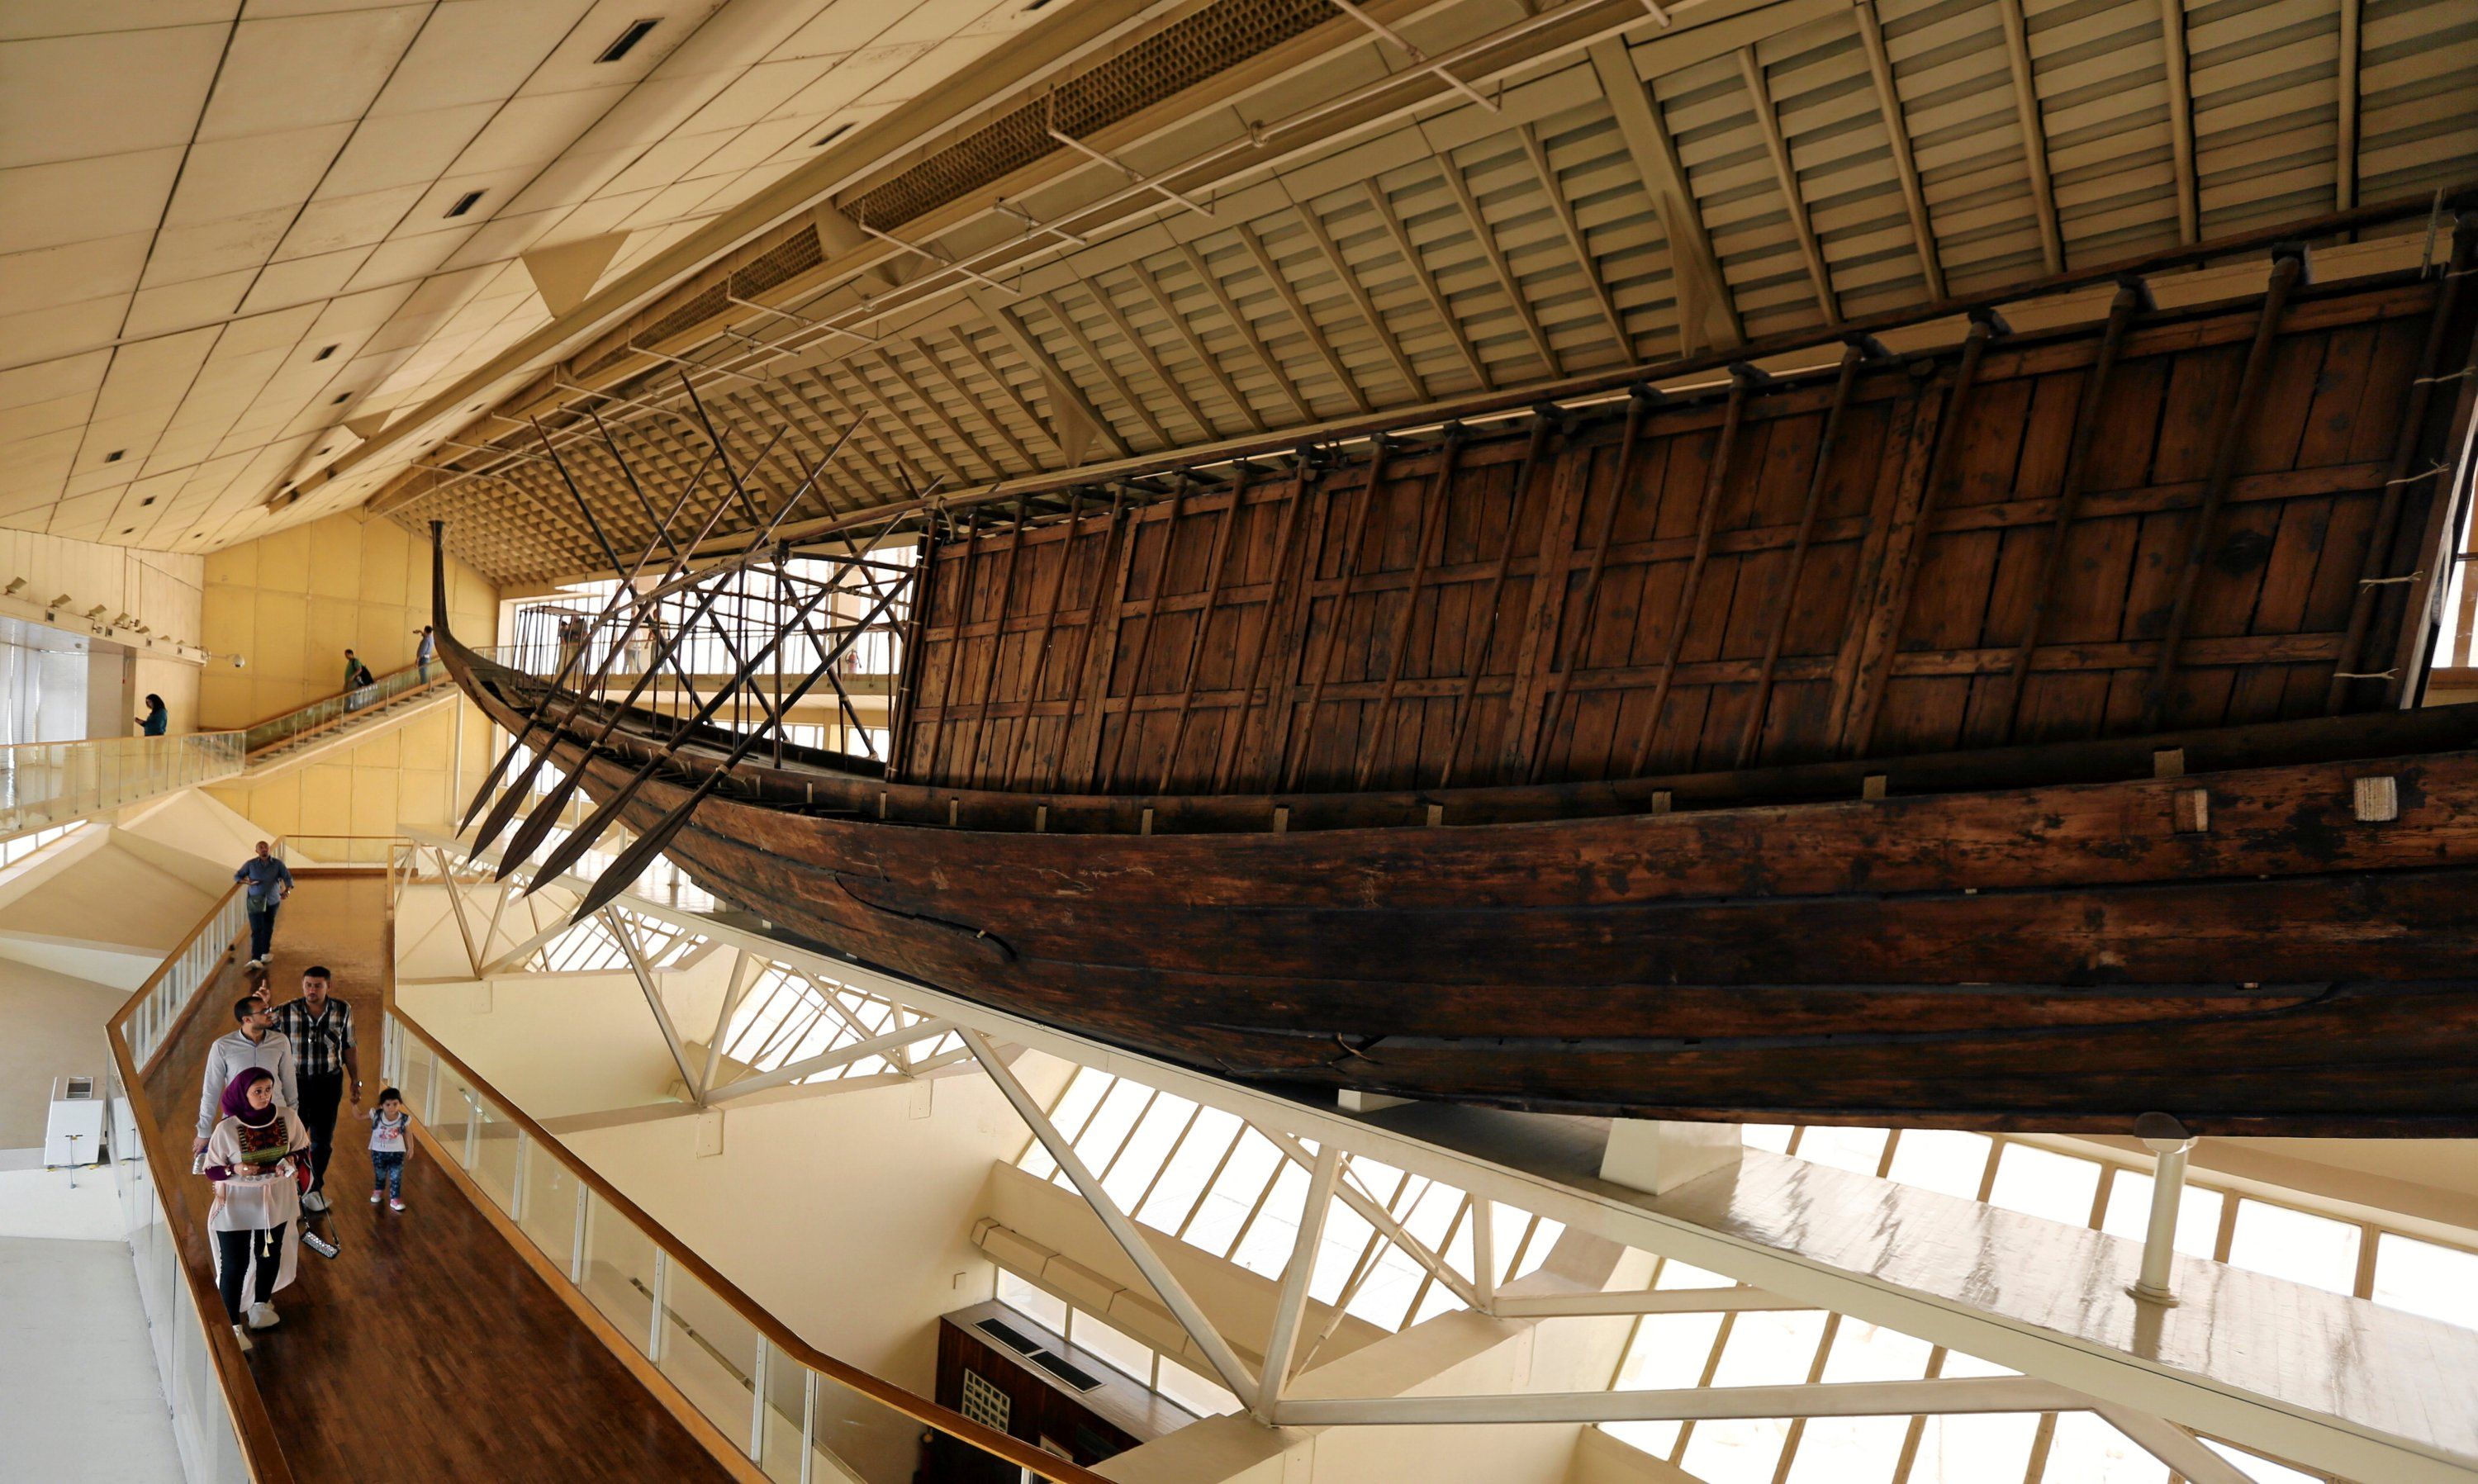 King Khufu's solar boat is displayed at a museum on the northern side of Khufu's Great Pyramid, in Giza, Egypt, Aug. 31, 2016. (REUTERS Photo)